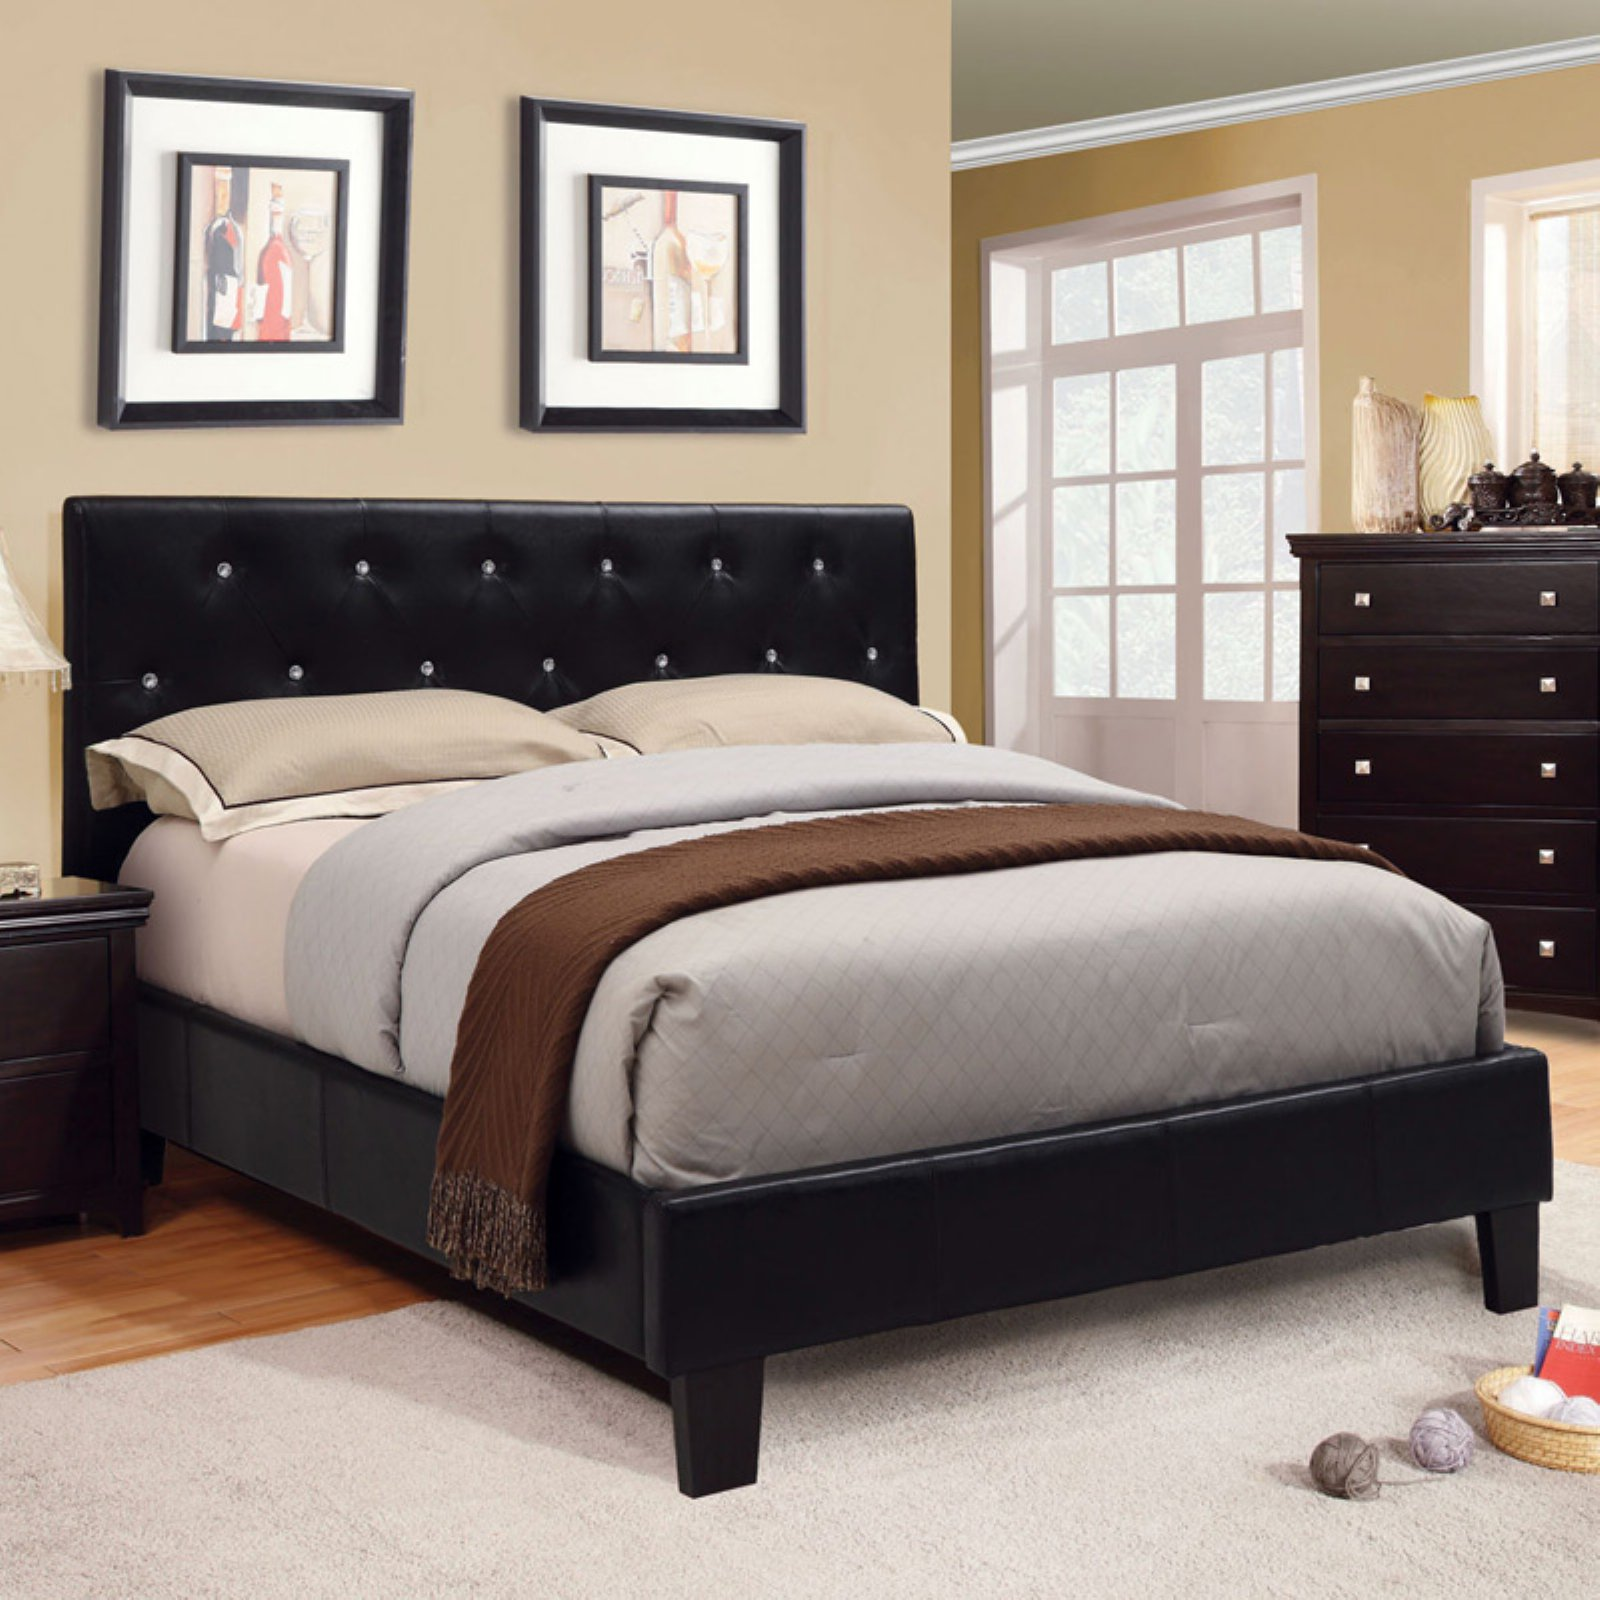 Furniture of America Vanna Rhinestone Tufted Platform Bed